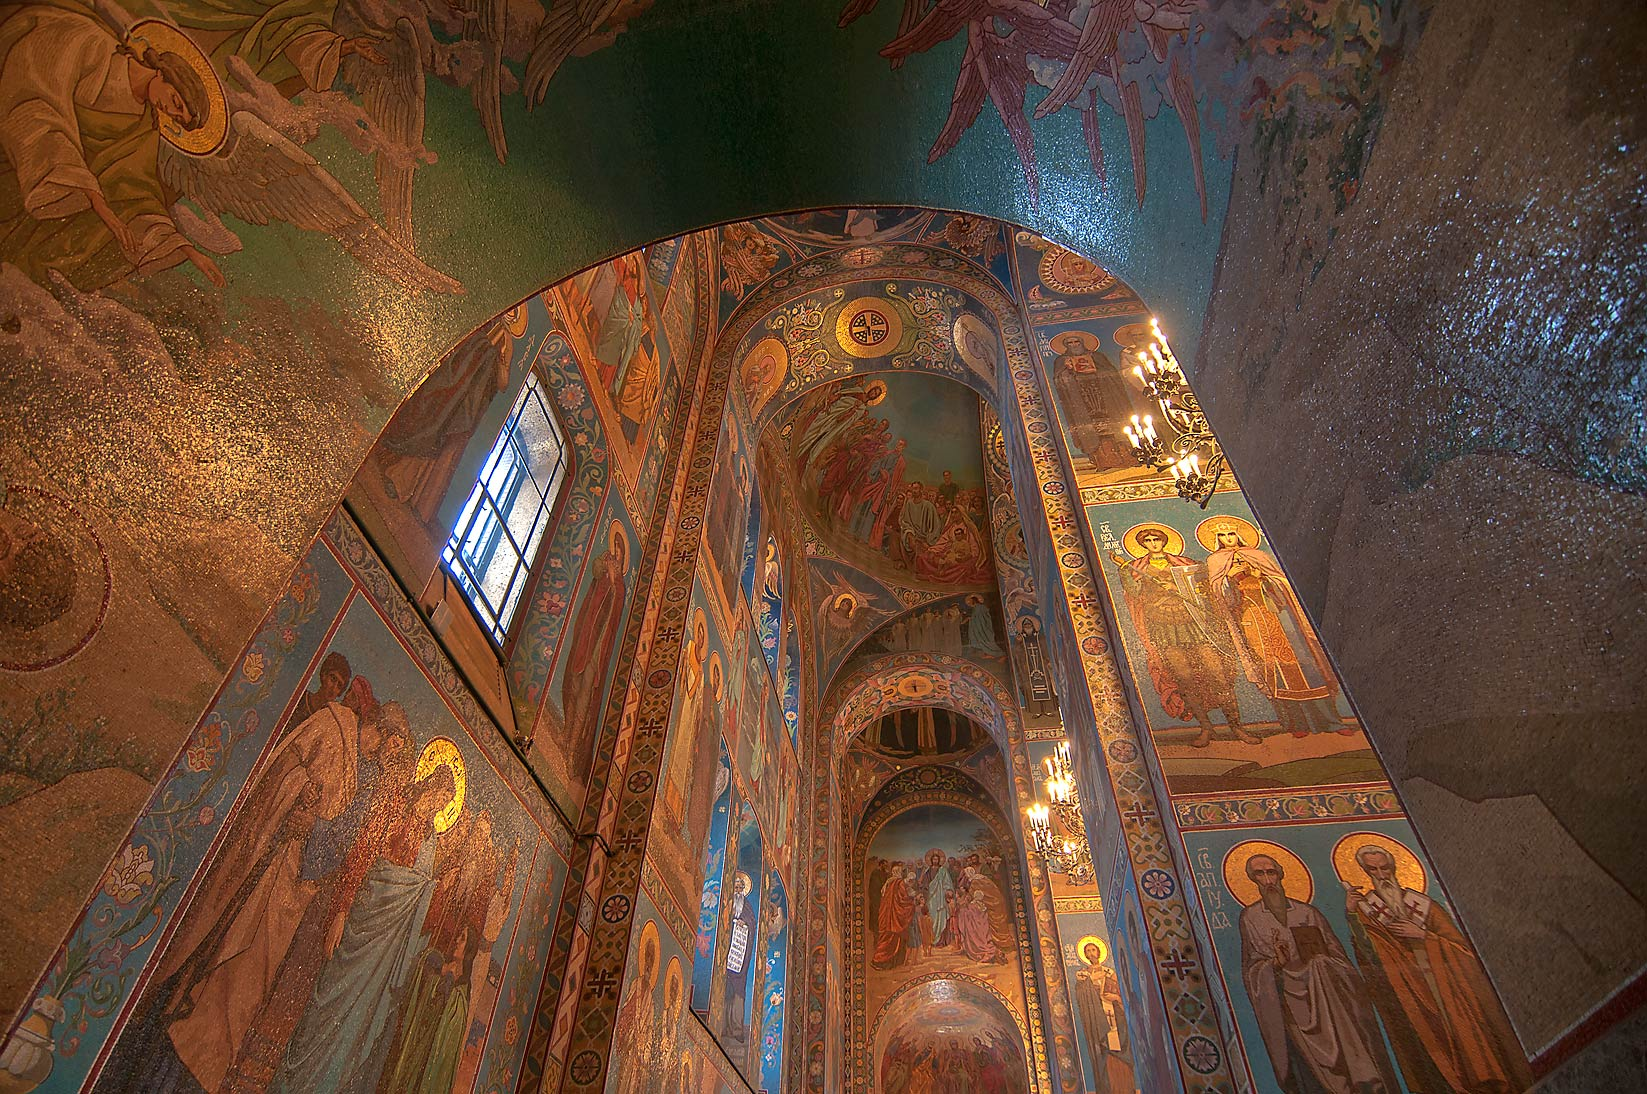 Arched galleries of Church of Savior on Blood. St.Petersburg, Russia